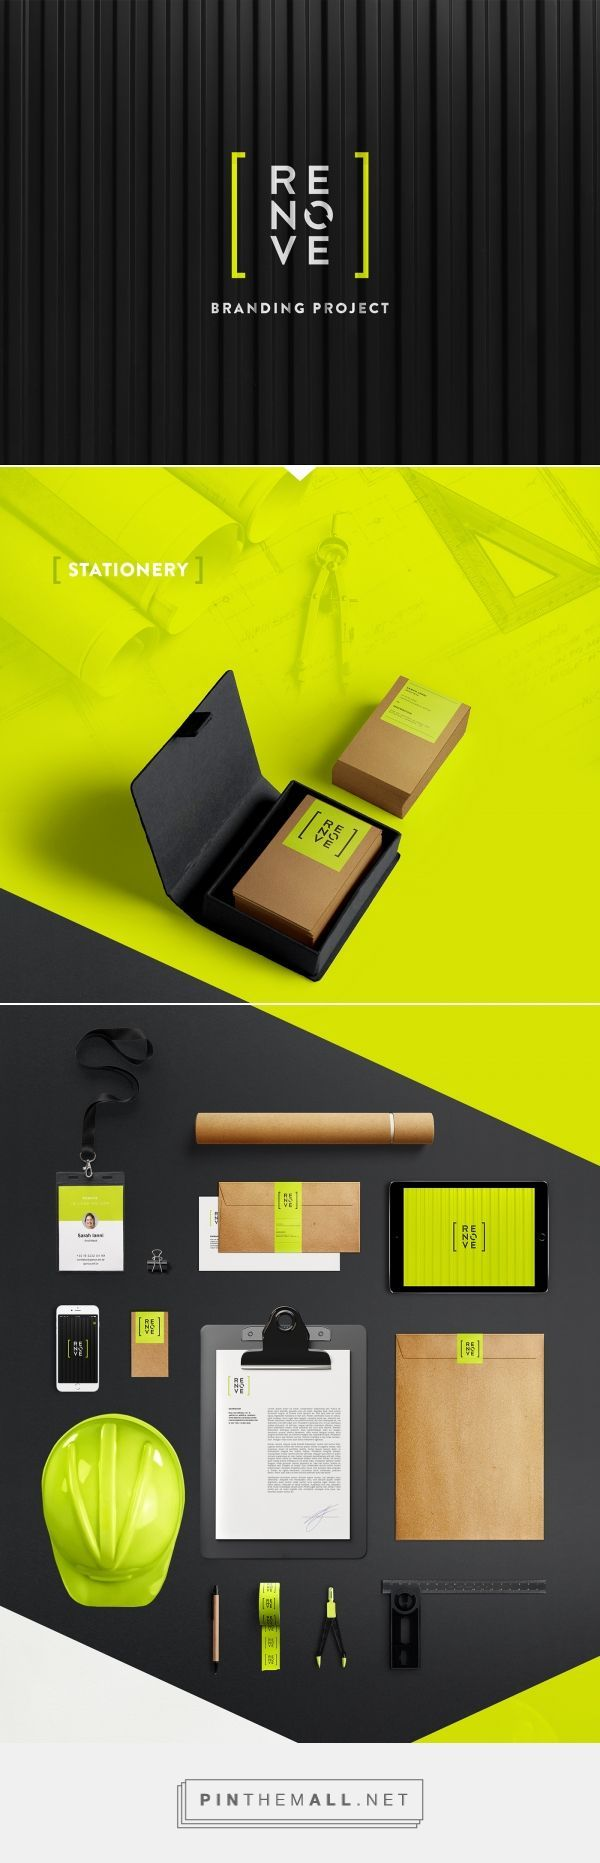 Renove | Brand Identity on Behance | Fivestar Branding – Design and Branding Agency & Inspiration Gallery